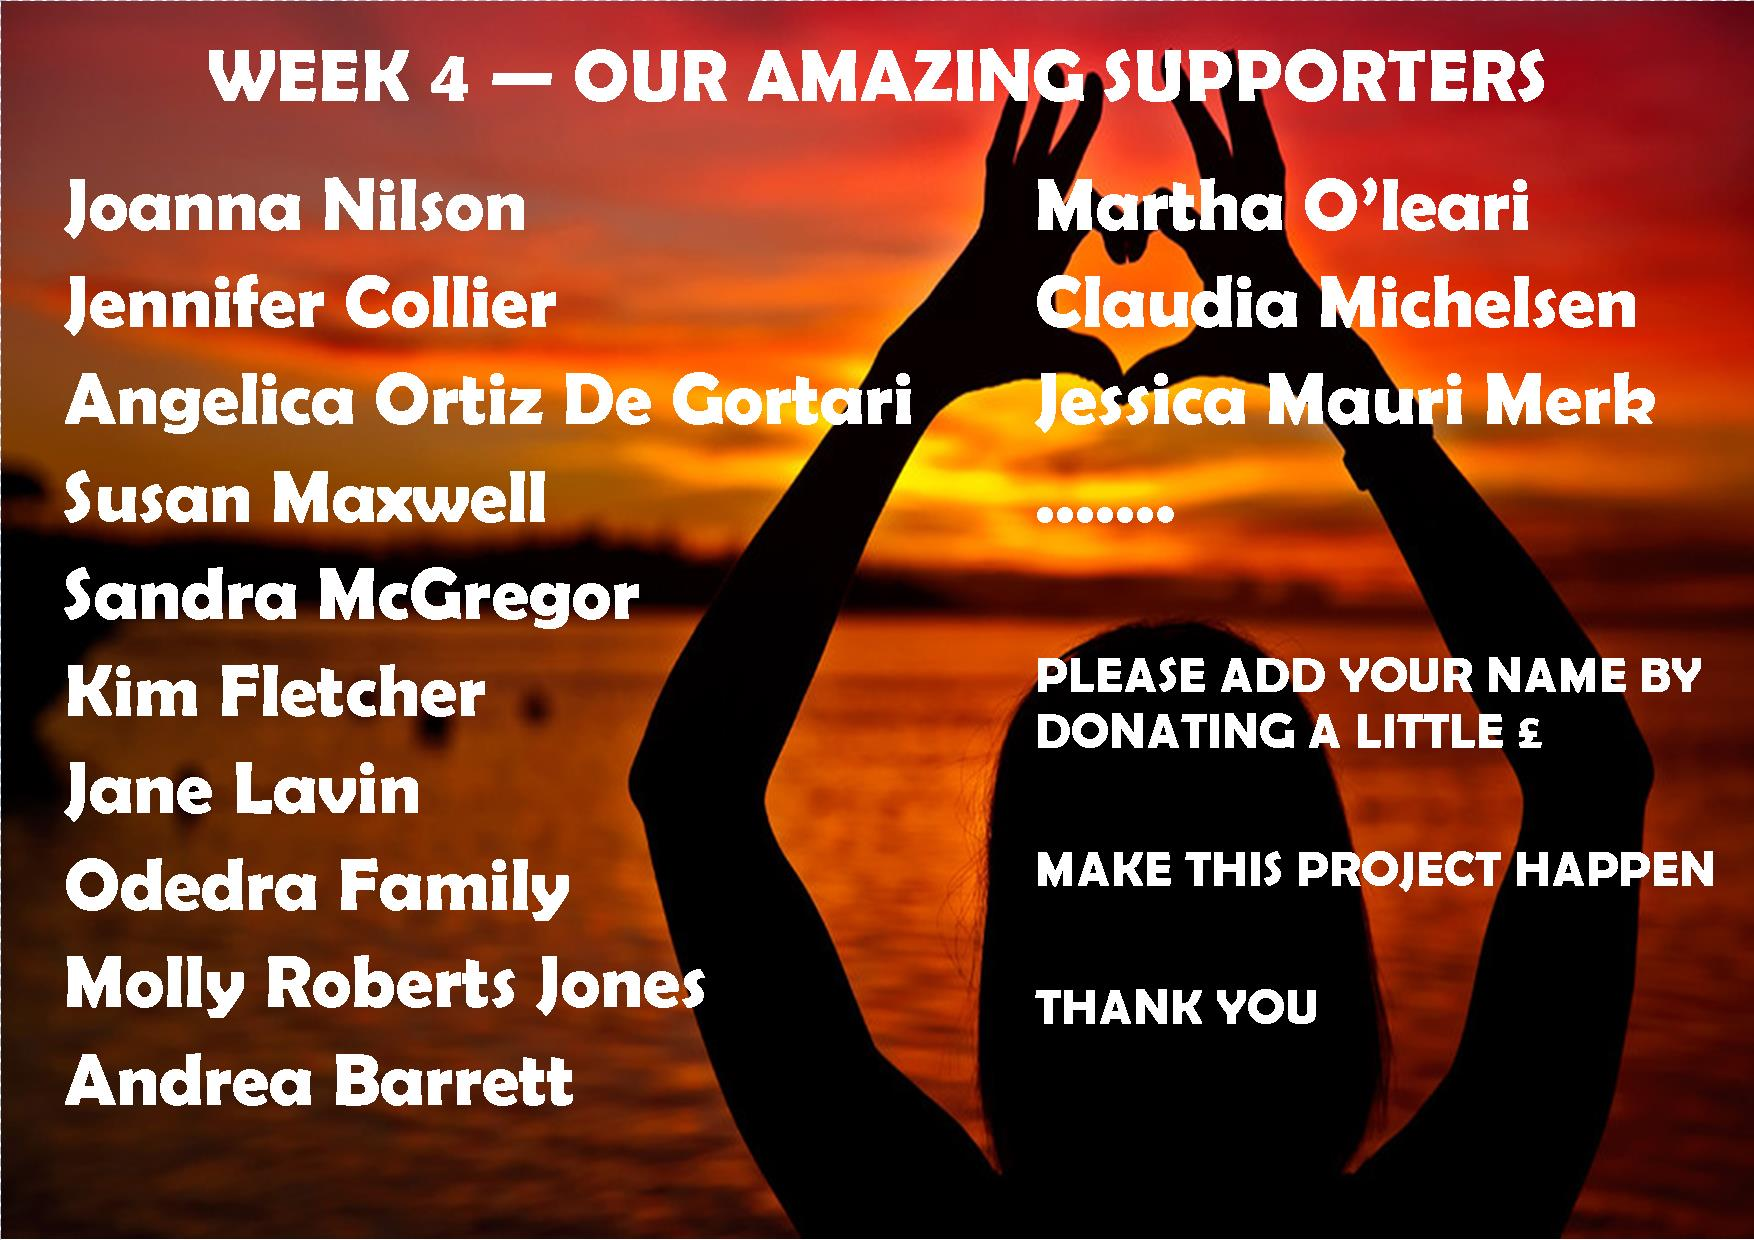 week 4 supporters ASK